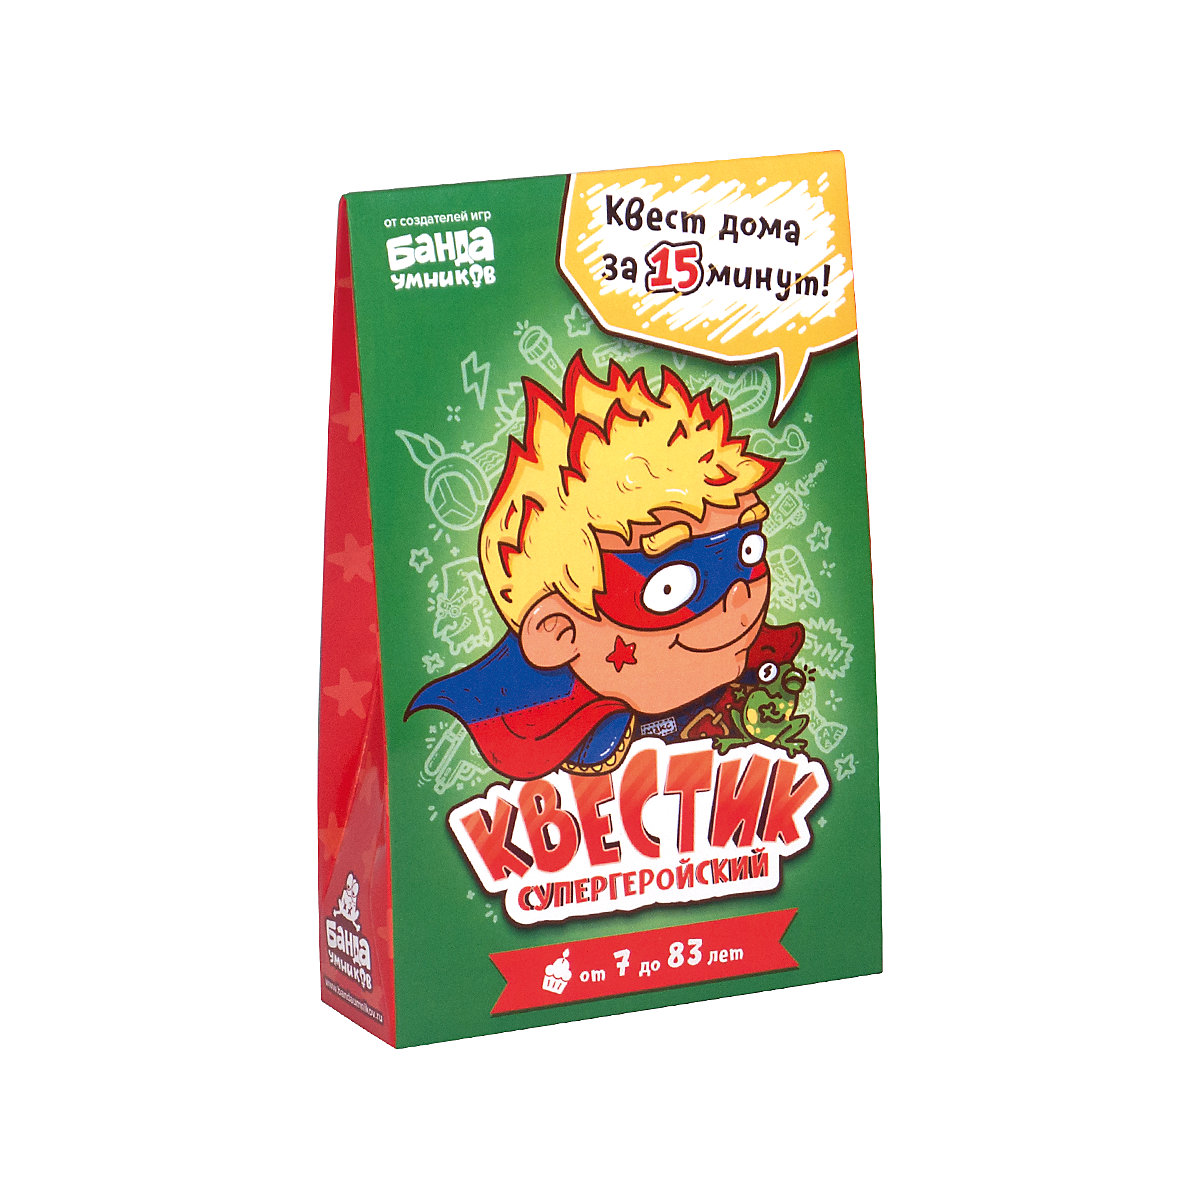 Banda umnikov Card Games 8398091 educational toys board game toy boys girls children training cards